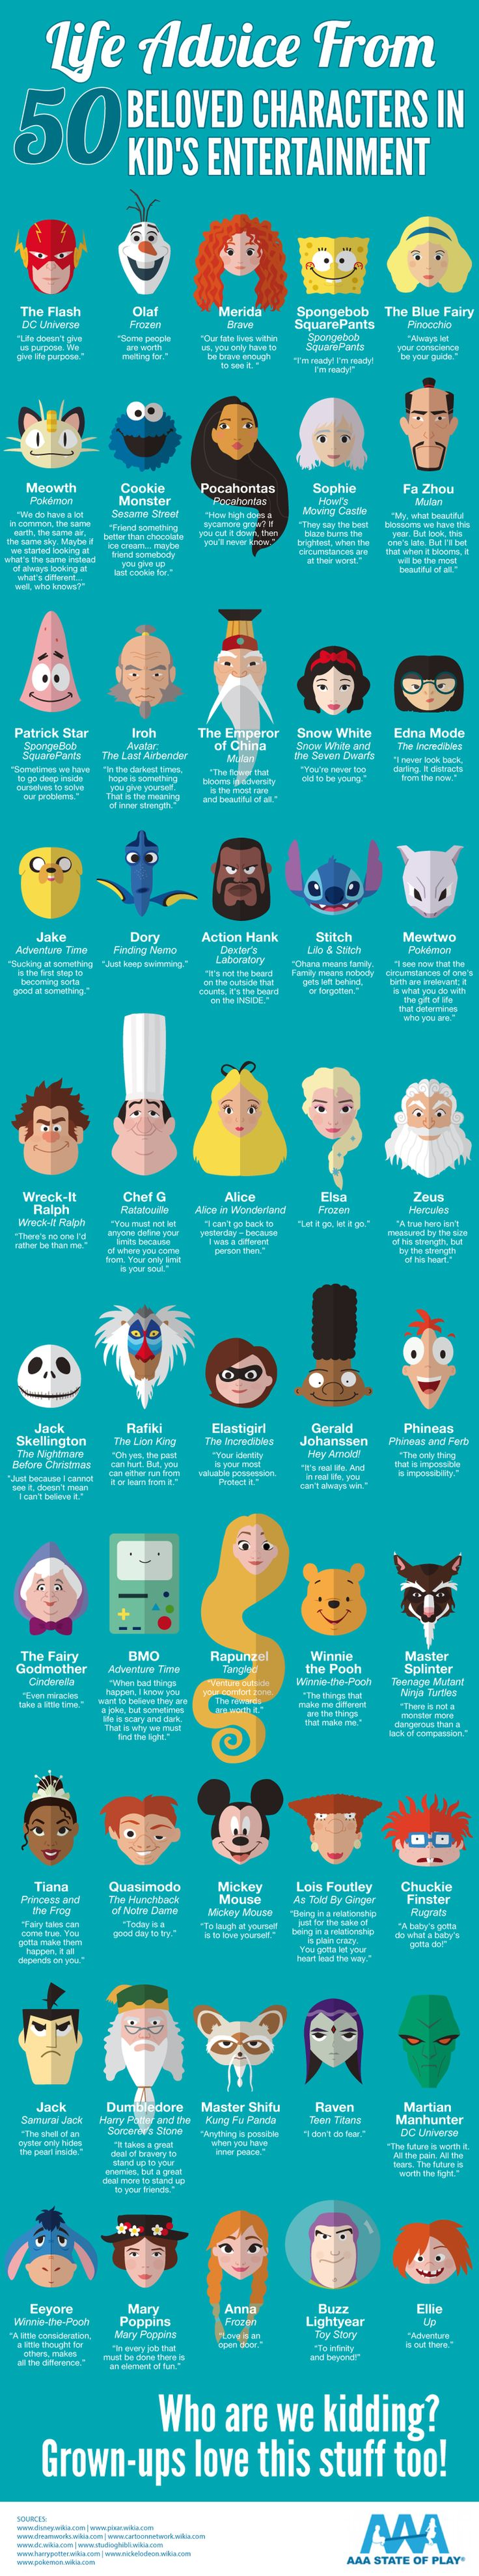 Life Advice From 50 Beloved Characters in Kids Entertainment – Infographic